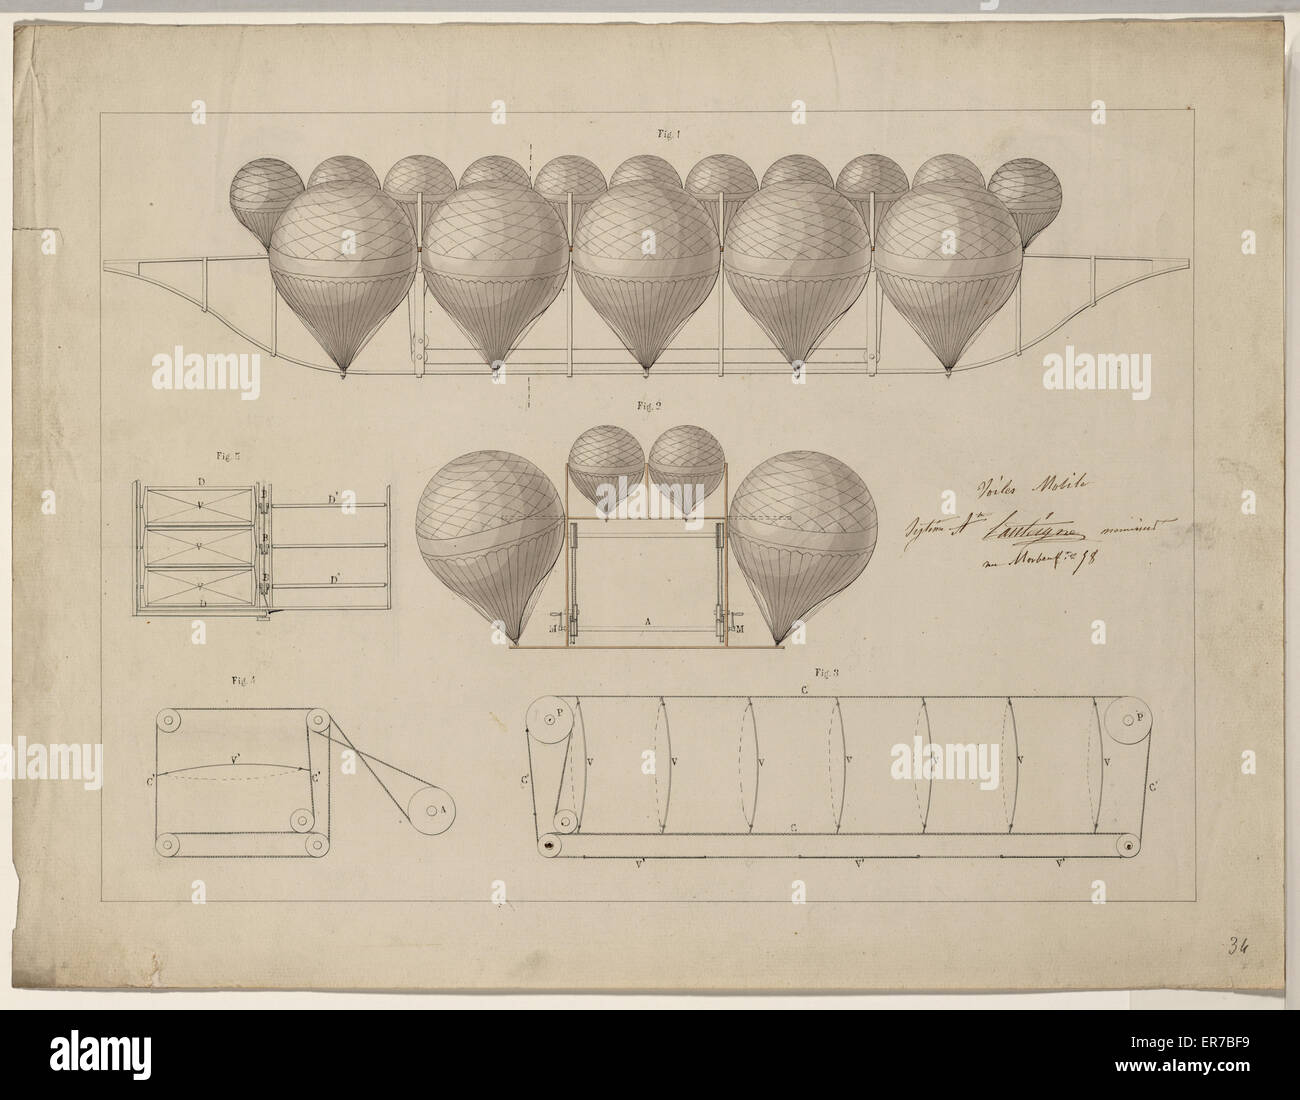 Voiles mobile. System Ate. Lanteigne menuisier. Design drawings for a system of airship navigation proposed by Aug. Stock Photo